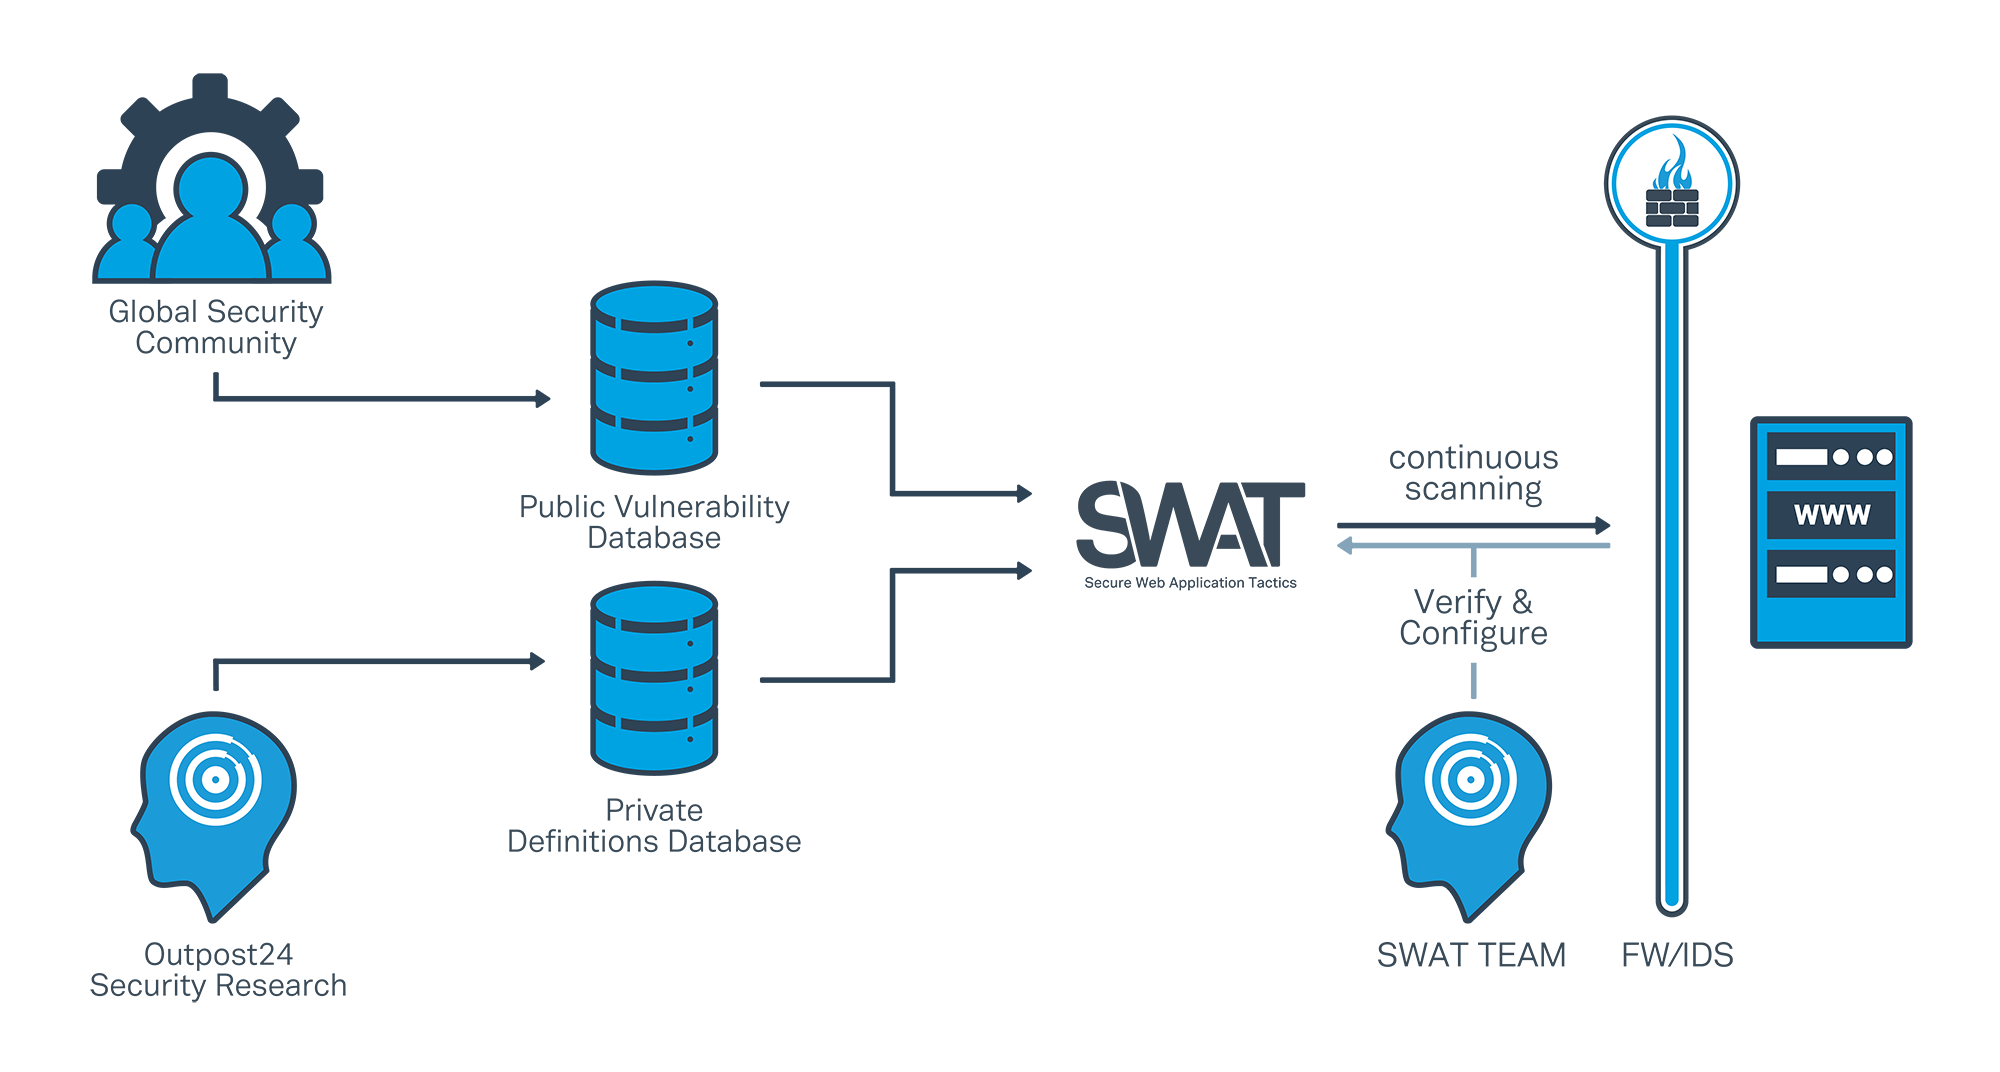 SWAT our Web Application Security solution for companies